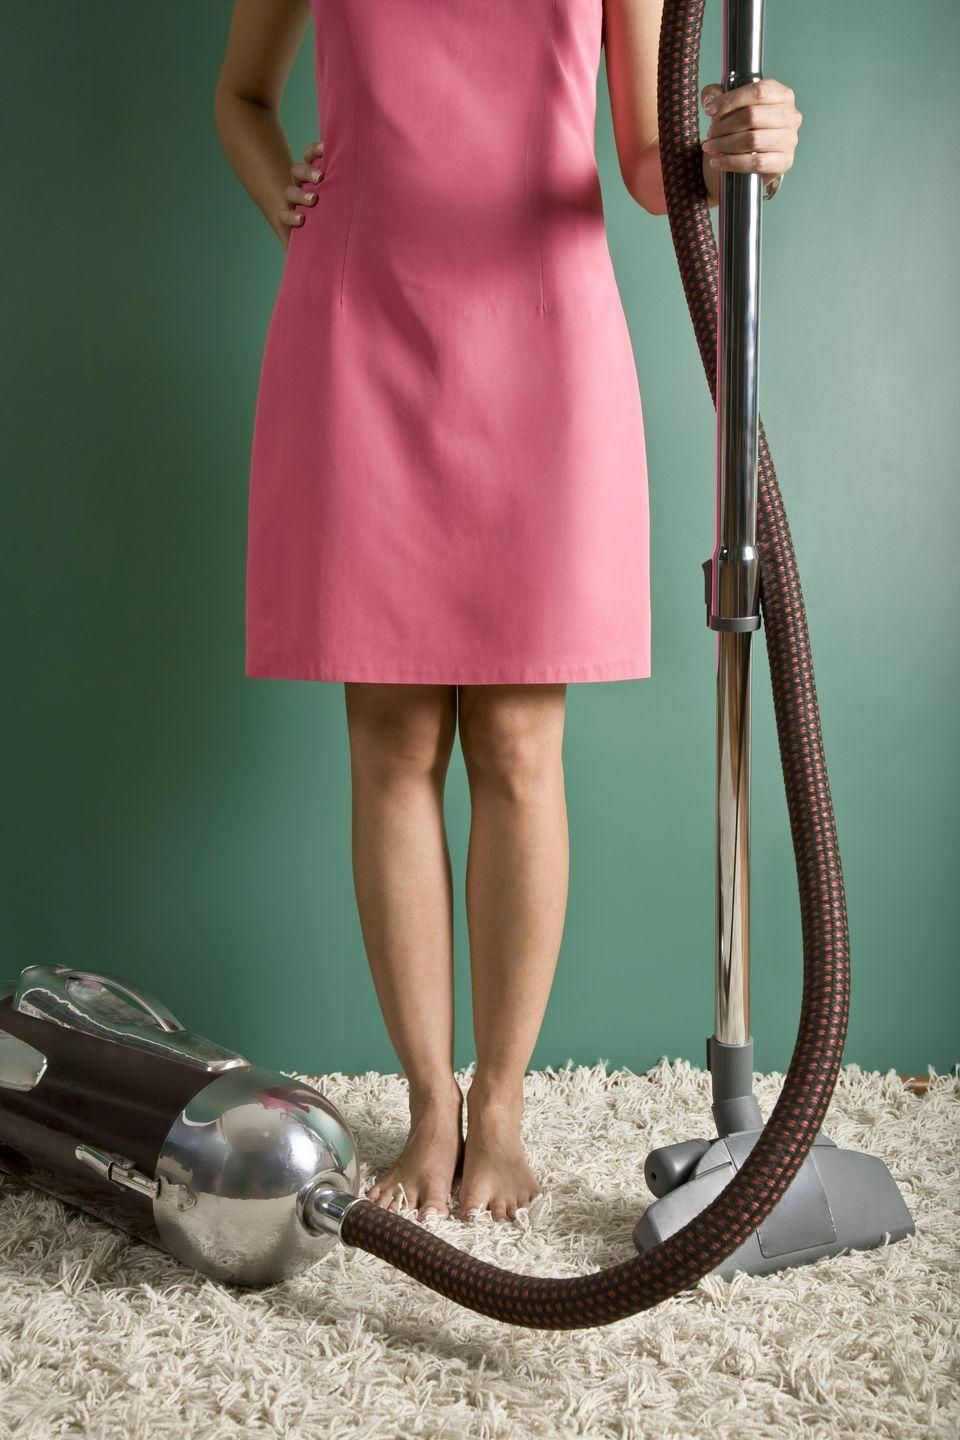 """<p>Who would have thought that old sweeper sitting forgotten in the corner of your basement could be worth something? Depending on the make and model, it could bring in the money. The proudly pink Hoover 738 from the 60s, for example, is selling for $499 on <a href=""""https://go.redirectingat.com?id=74968X1596630&url=https%3A%2F%2Fwww.ebay.com%2Fitm%2Fgroovy-Vintage-Mid-Century-60s-Model-728-Hoover-Convertible-Vacuum-Cleaner%2F293243147382%3Fhash%3Ditem4446a75476%253Ag%253AOWUAAOSwPu9dd9RG&sref=https%3A%2F%2Fwww.goodhousekeeping.com%2Flife%2Fg35334508%2Fvaluable-antiques-basement%2F"""" rel=""""nofollow noopener"""" target=""""_blank"""" data-ylk=""""slk:eBay"""" class=""""link rapid-noclick-resp"""">eBay</a>.</p>"""